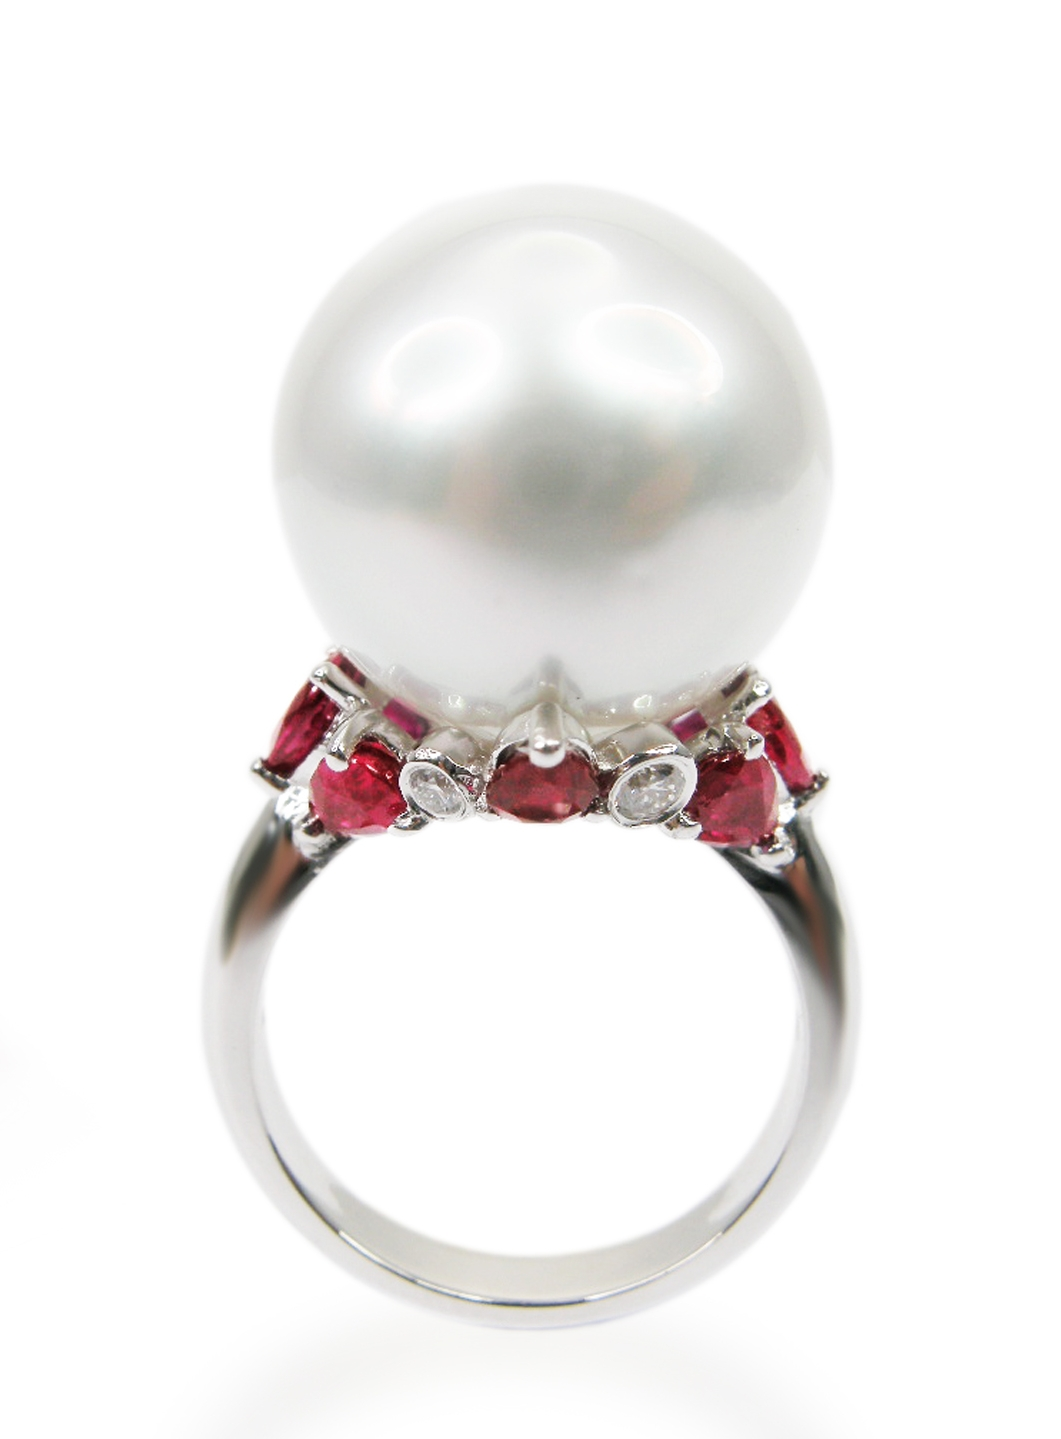 SOUTH SEA PEARL DIAMOND & RUBY RING BESPOKE FINE JEWELLERY BY SHAHINA HATTA